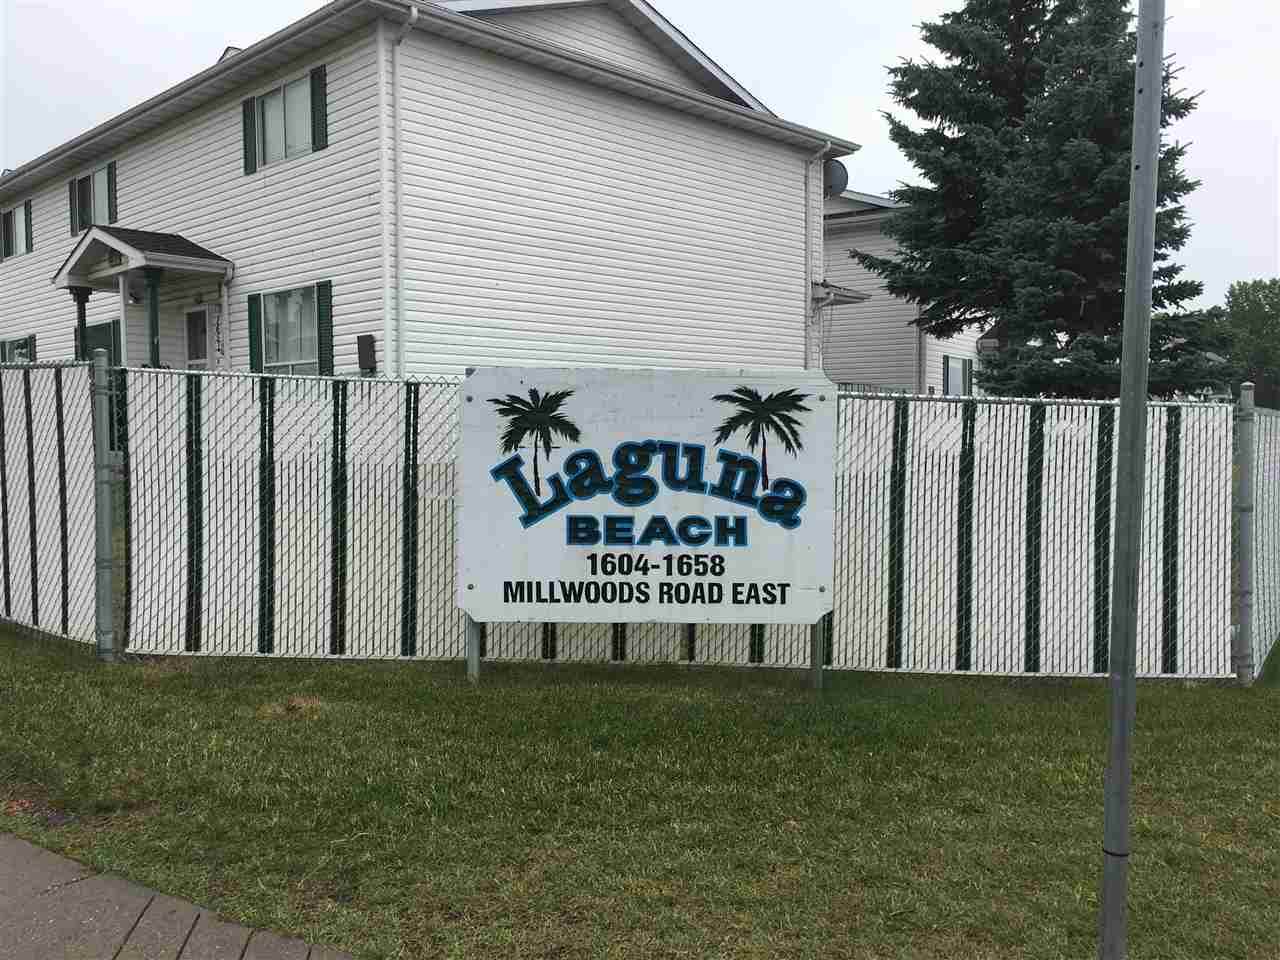 Main Photo: 1658 Millwoods Road E in Edmonton: Zone 29 Townhouse for sale : MLS® # E4073536